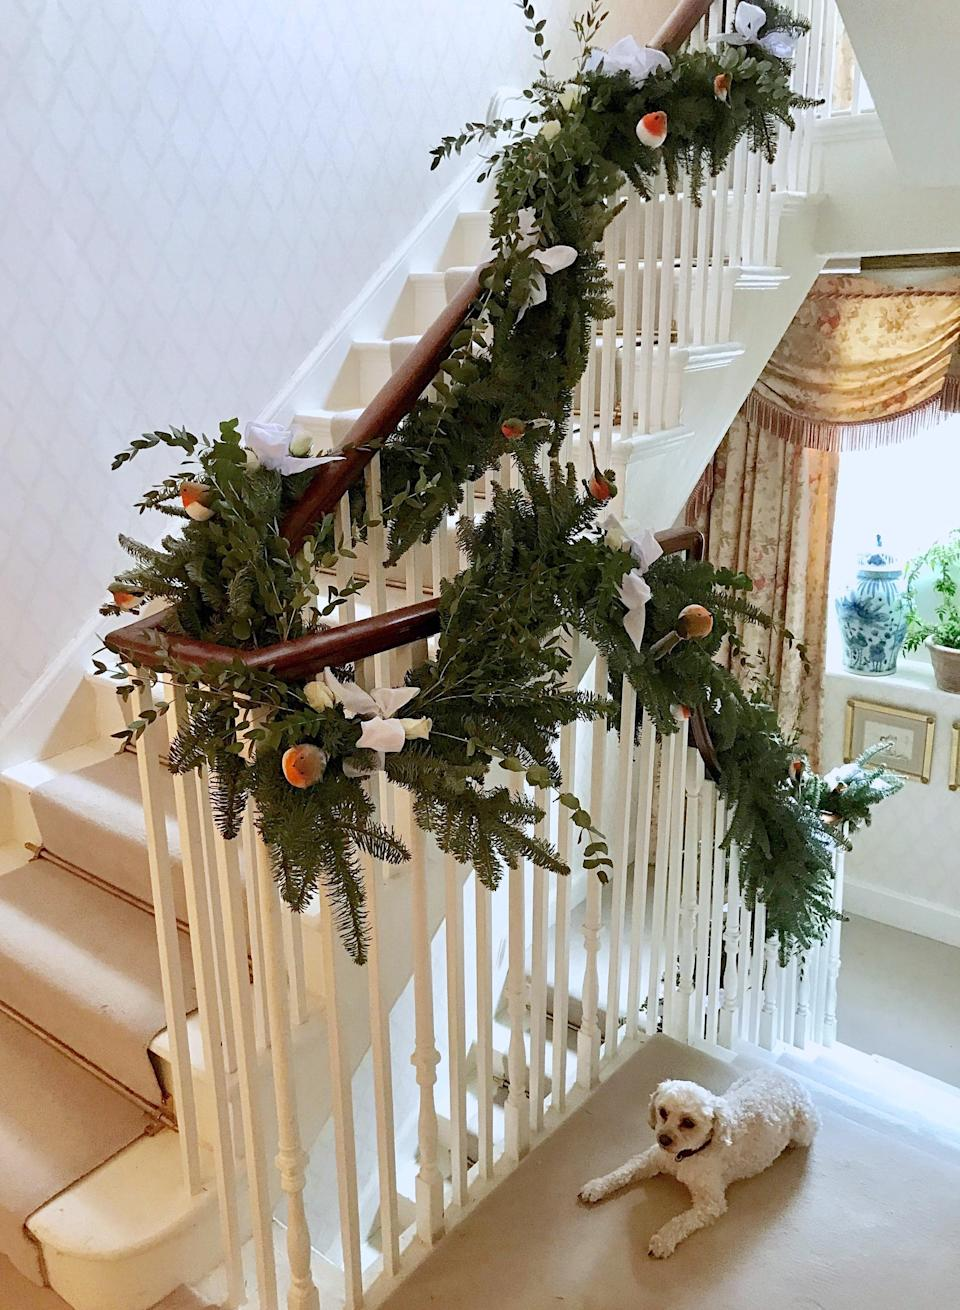 Ethel, our Cavapoo, takes a break by our staircase. We wrapped fresh garlands all the way up and added robins, ribbons, and roses. It smelt amazing!